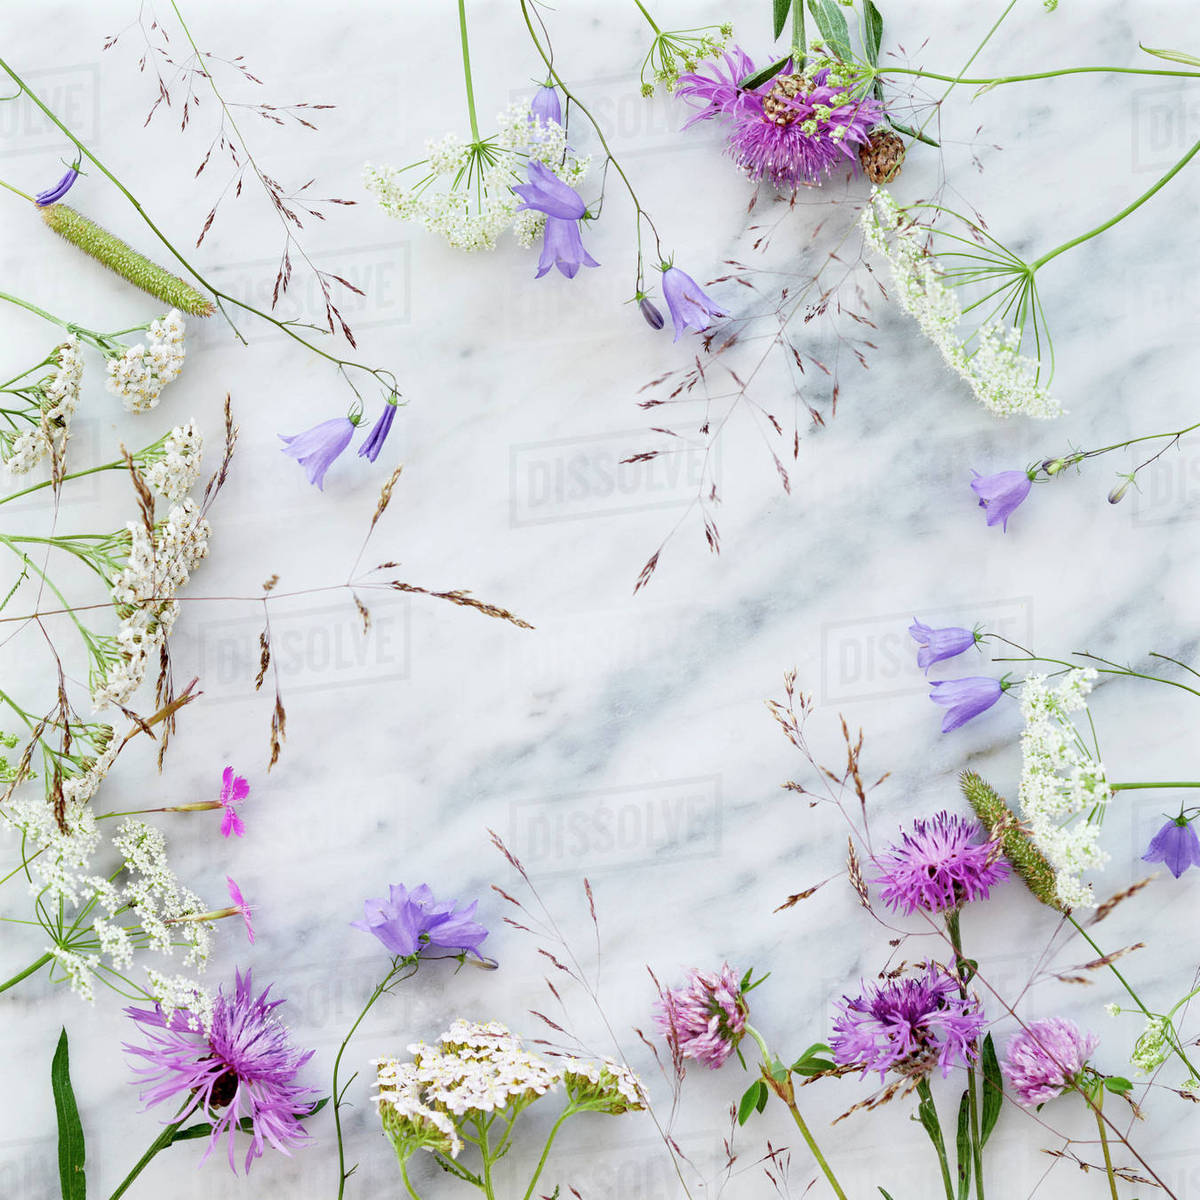 Wildflowers On Marble Background Stock Photo Dissolve